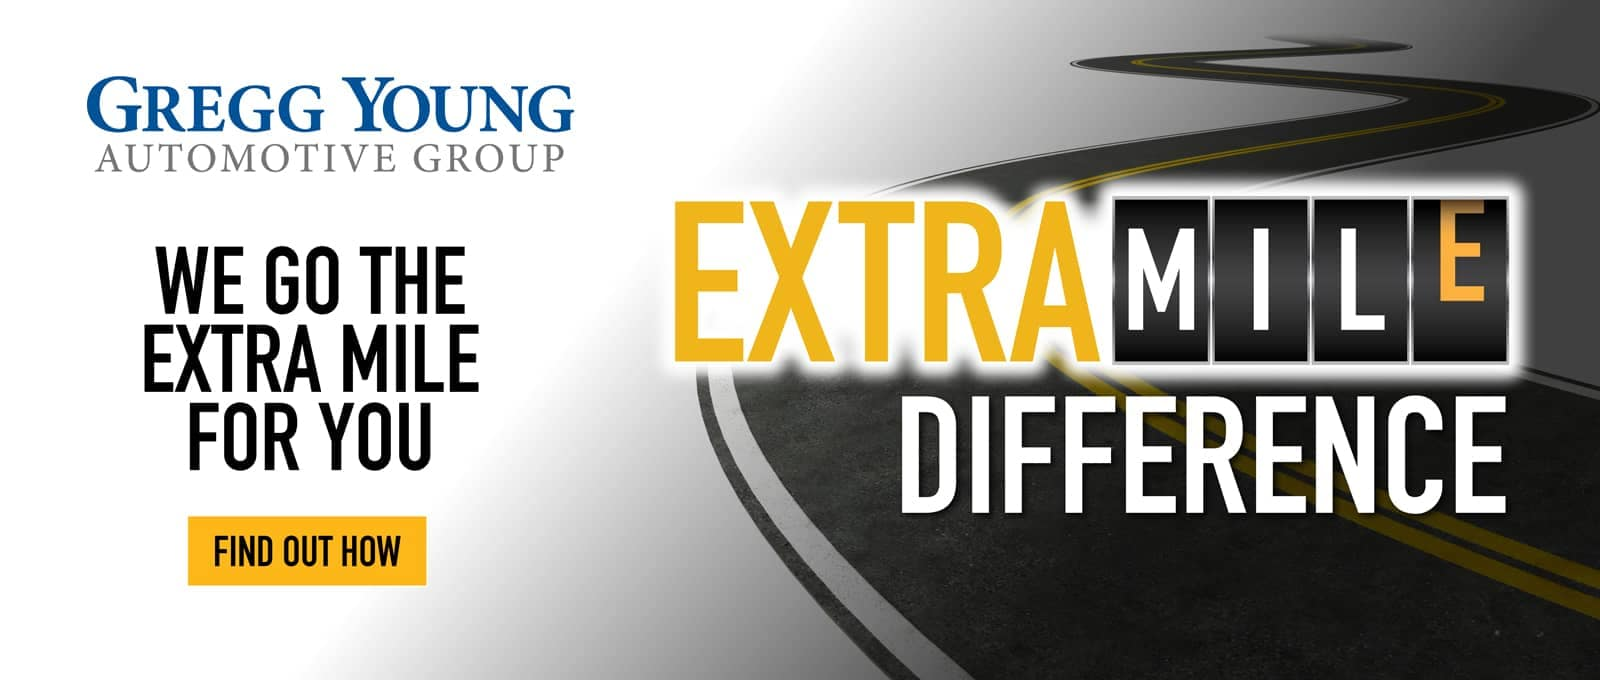 Extra Mile Banner